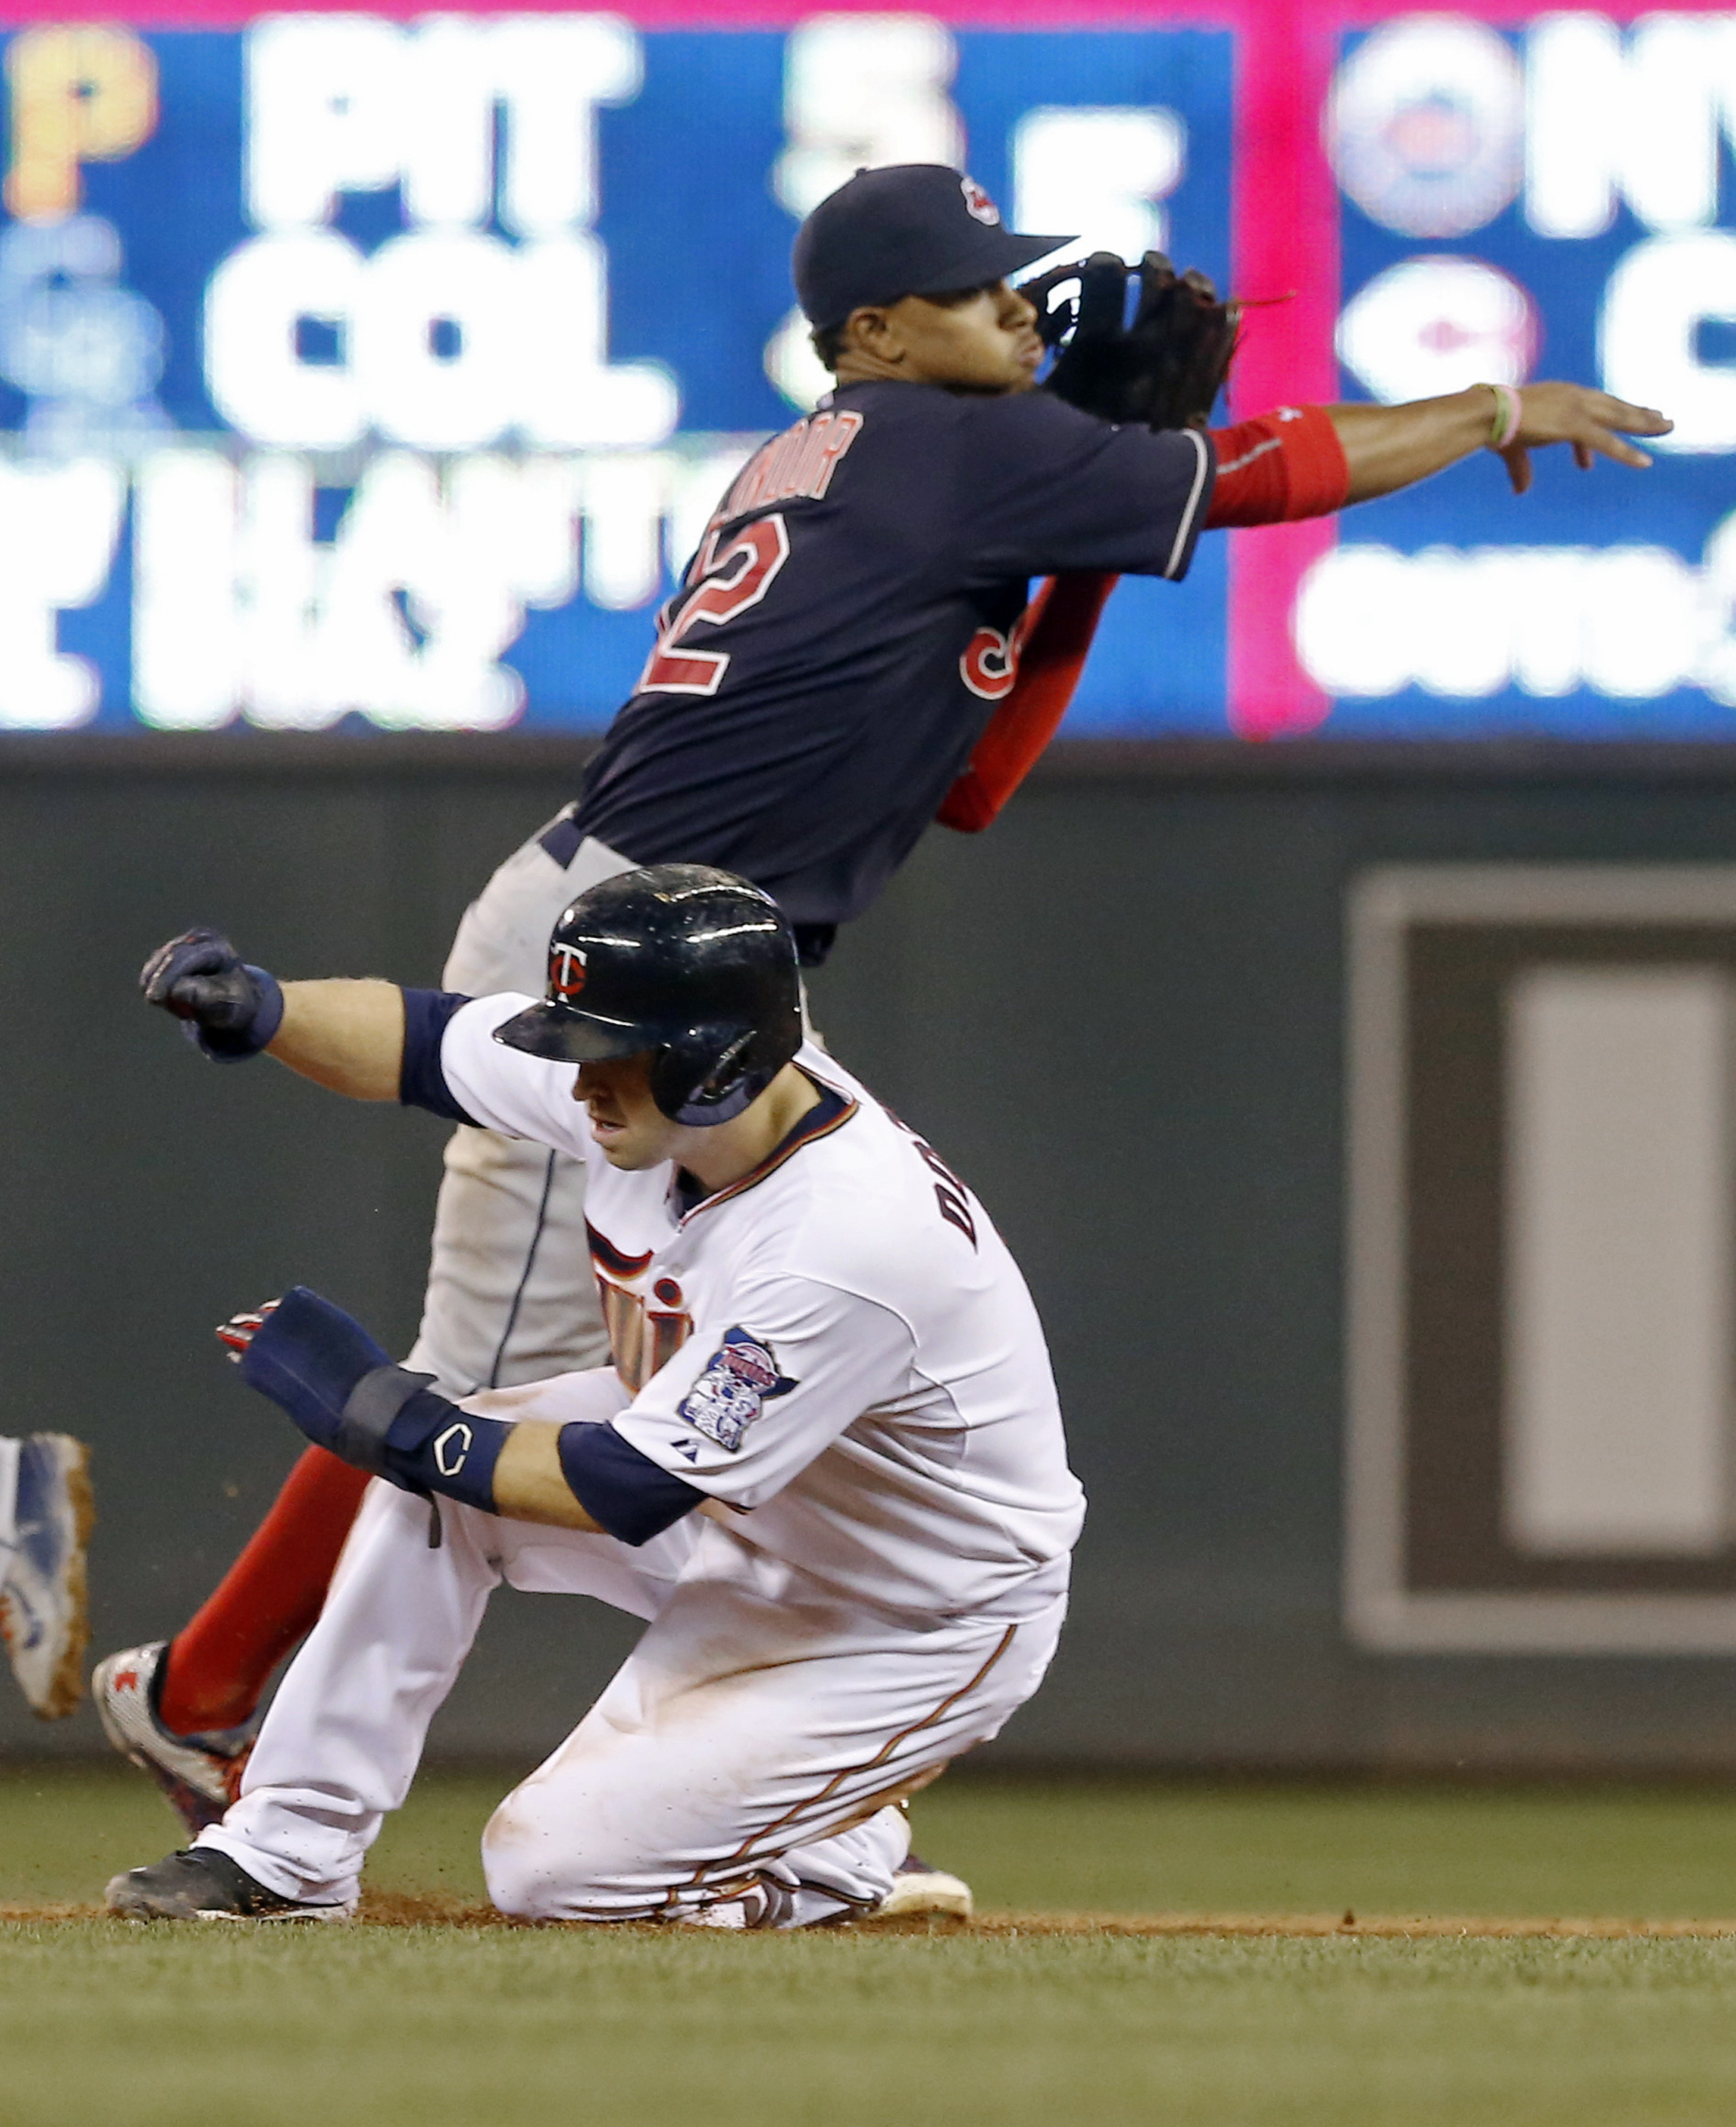 Cleveland Indians shortstop Francisco Lindor, right, completes the double play after the force at second of Minnesota Twins' Brian Dozier in the sixth inning of a baseball game, Thursday, Sept. 24, 2015, in Minneapolis. Twins' Joe Mauer hit into the doubl